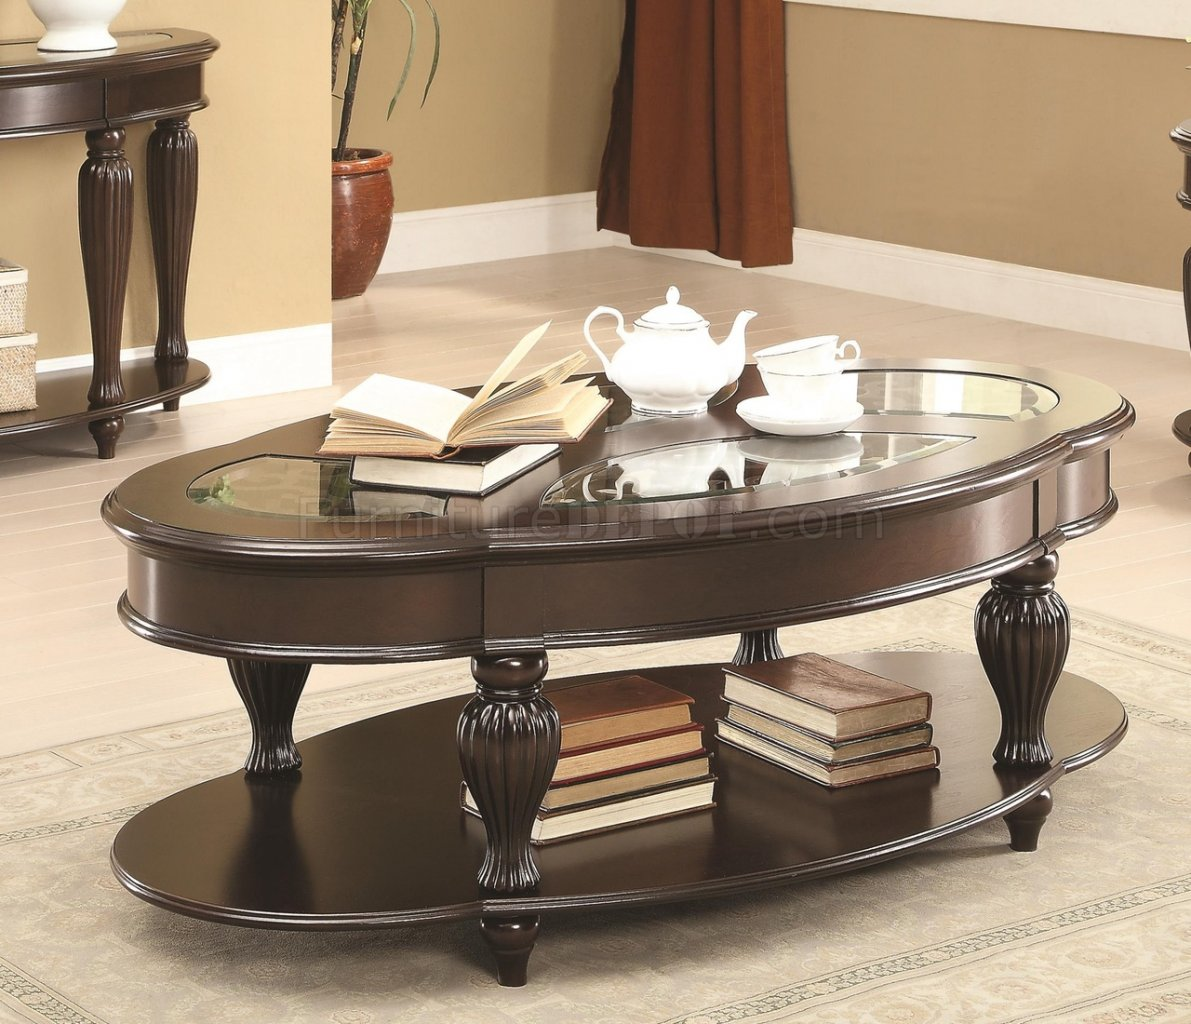 703848 coffee table by coaster in dark merlot w optional tables Coaster coffee tables